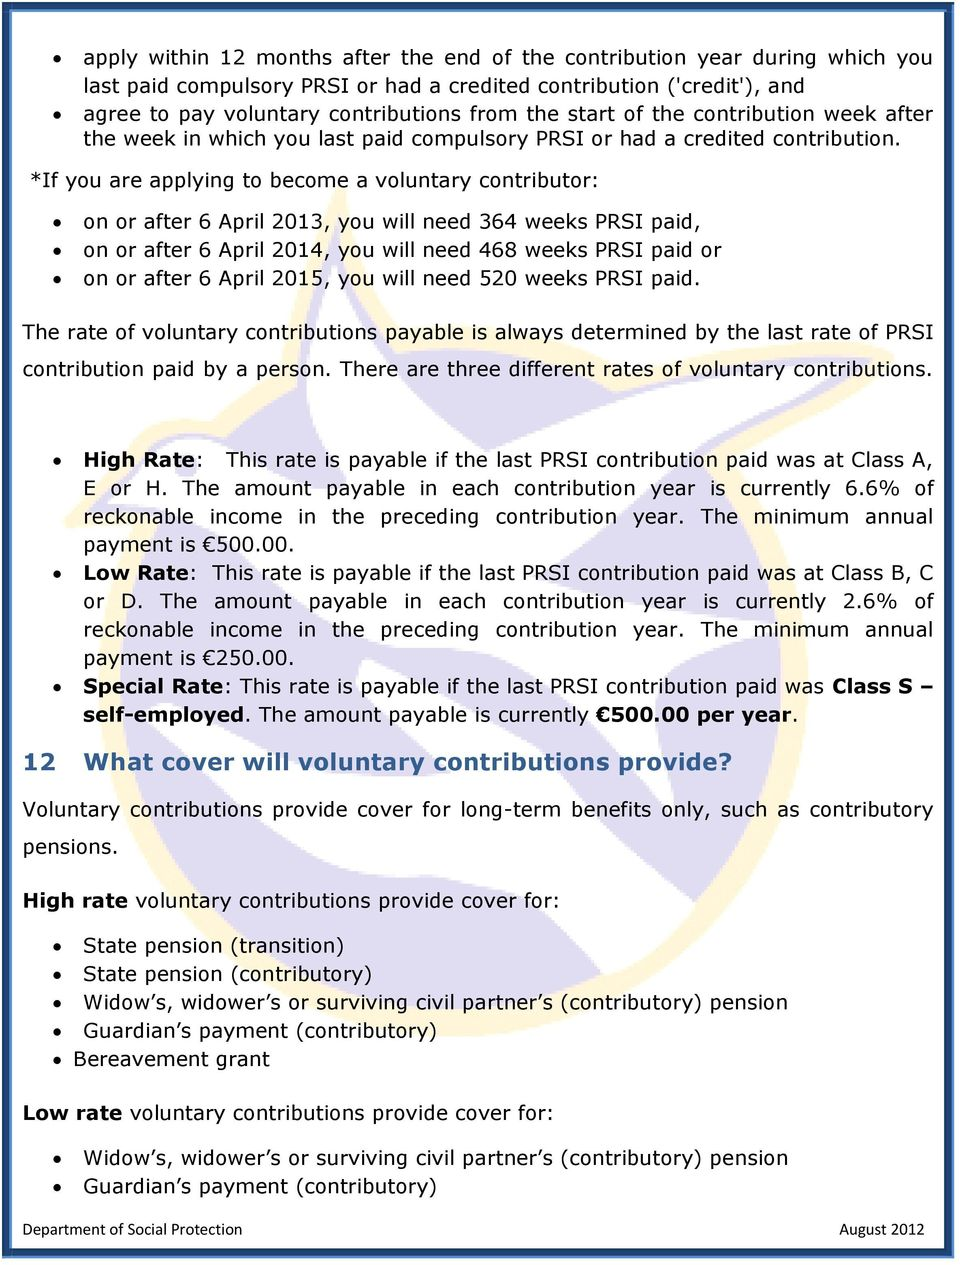 *If you are applying to become a voluntary contributor: on or after 6 April 2013, you will need 364 weeks PRSI paid, on or after 6 April 2014, you will need 468 weeks PRSI paid or on or after 6 April